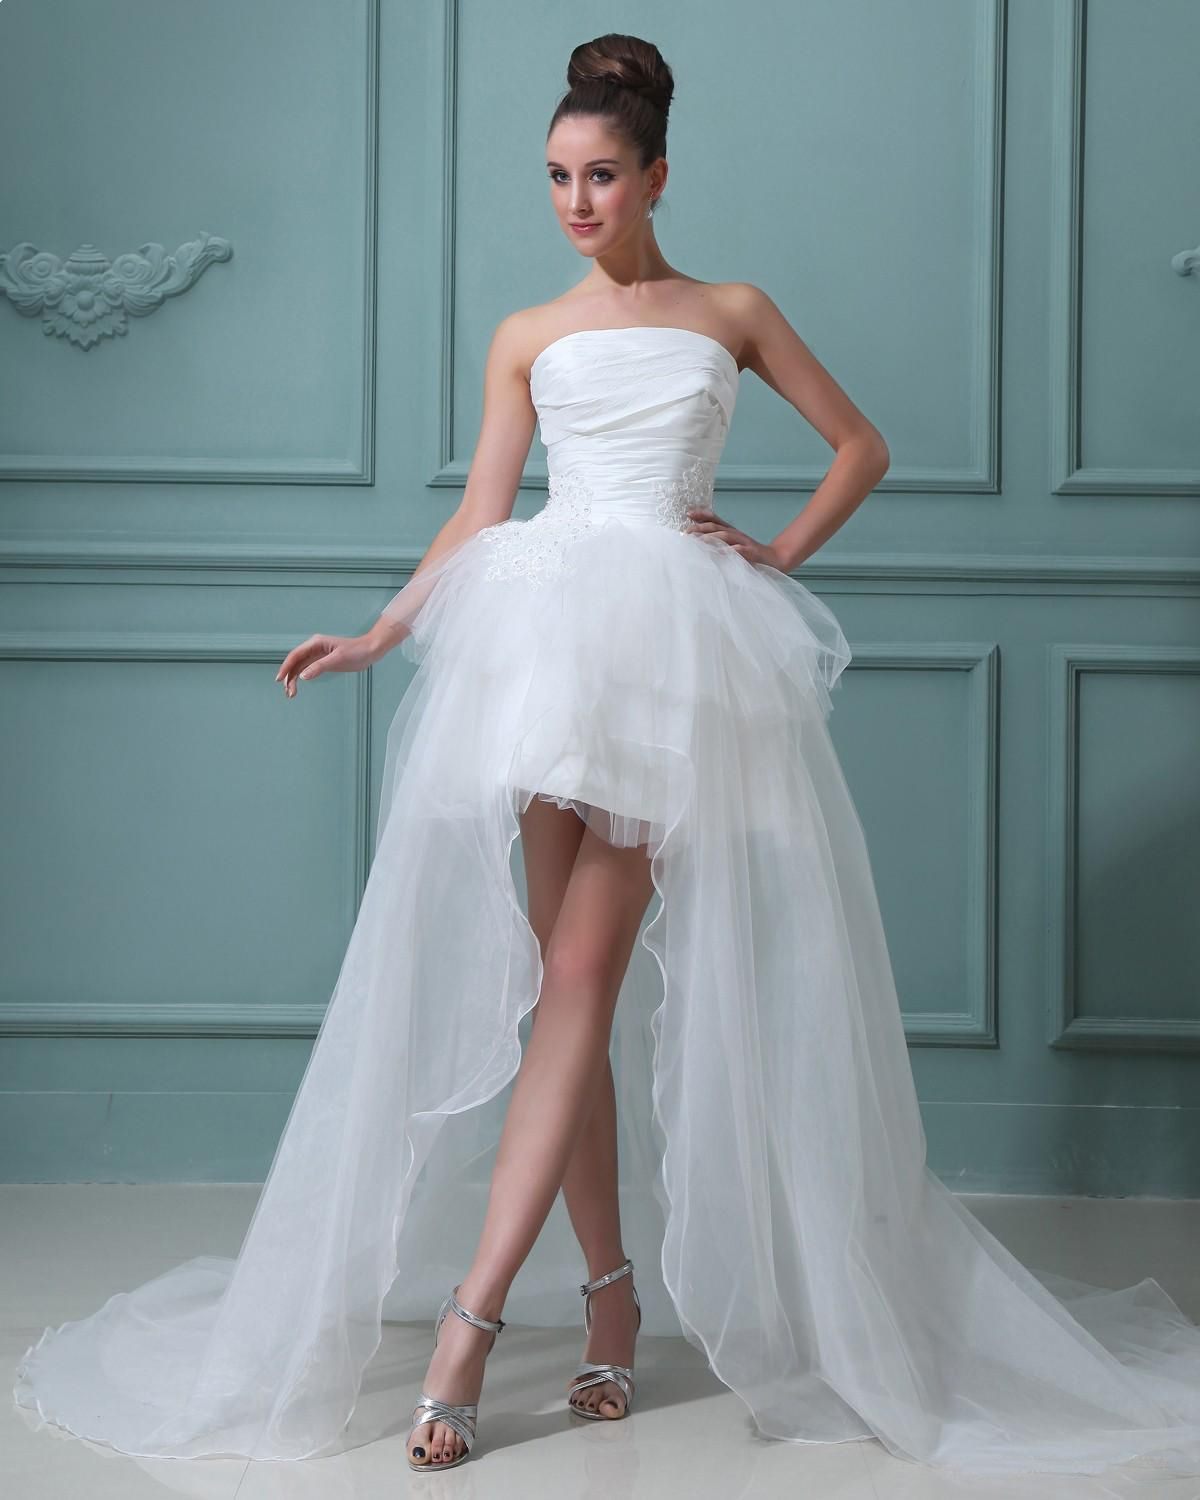 Strapless taffeta short bridal gown wedding dress alineprincess